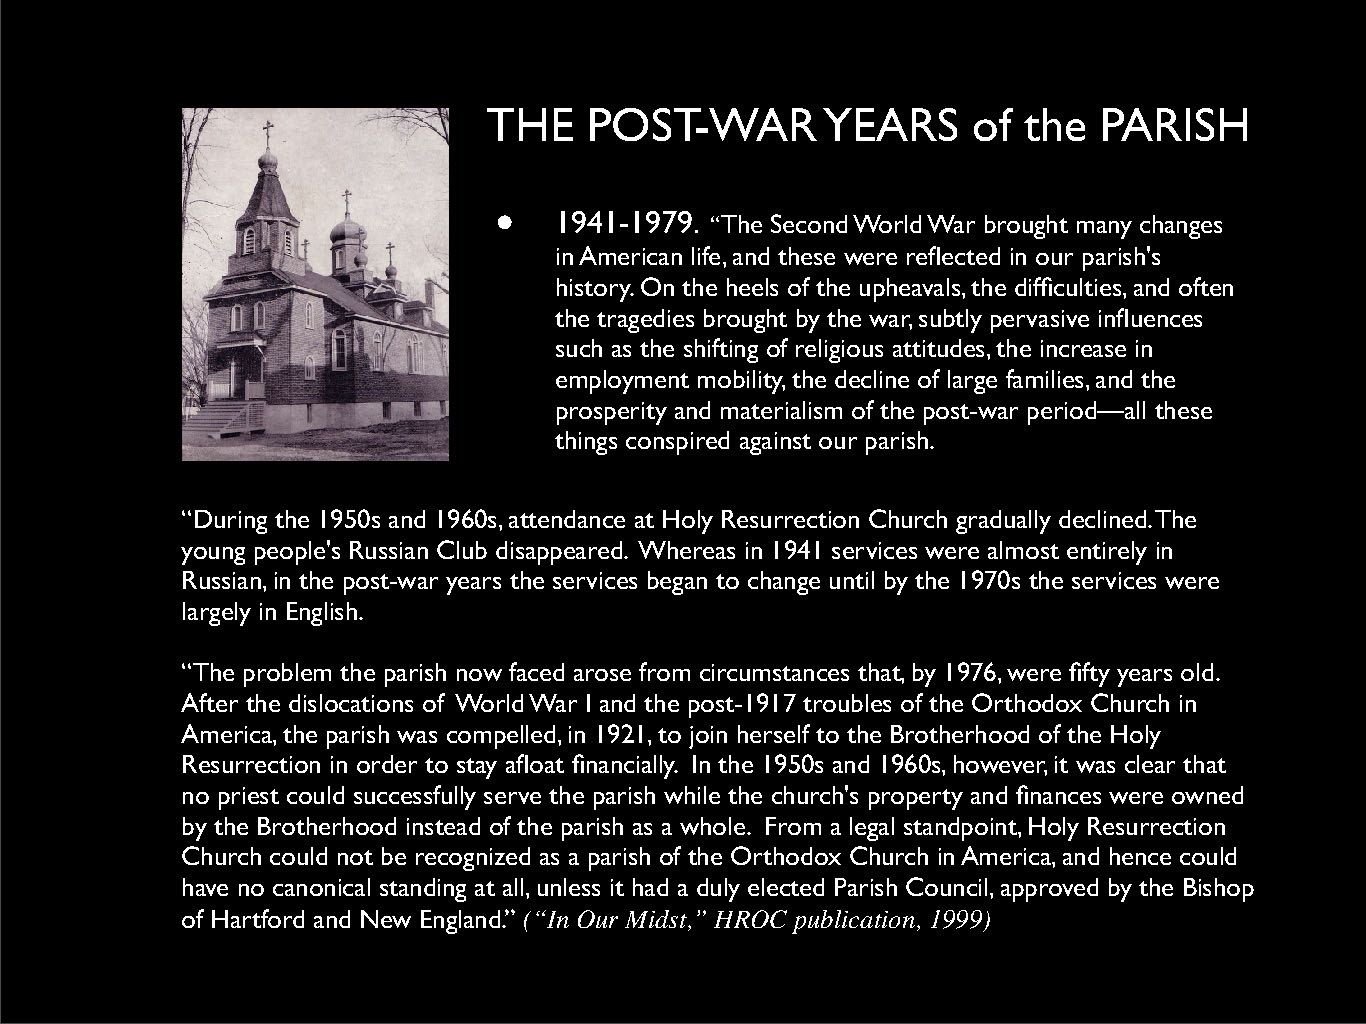 HROC-100-History-of-the-Parish1_Page_039